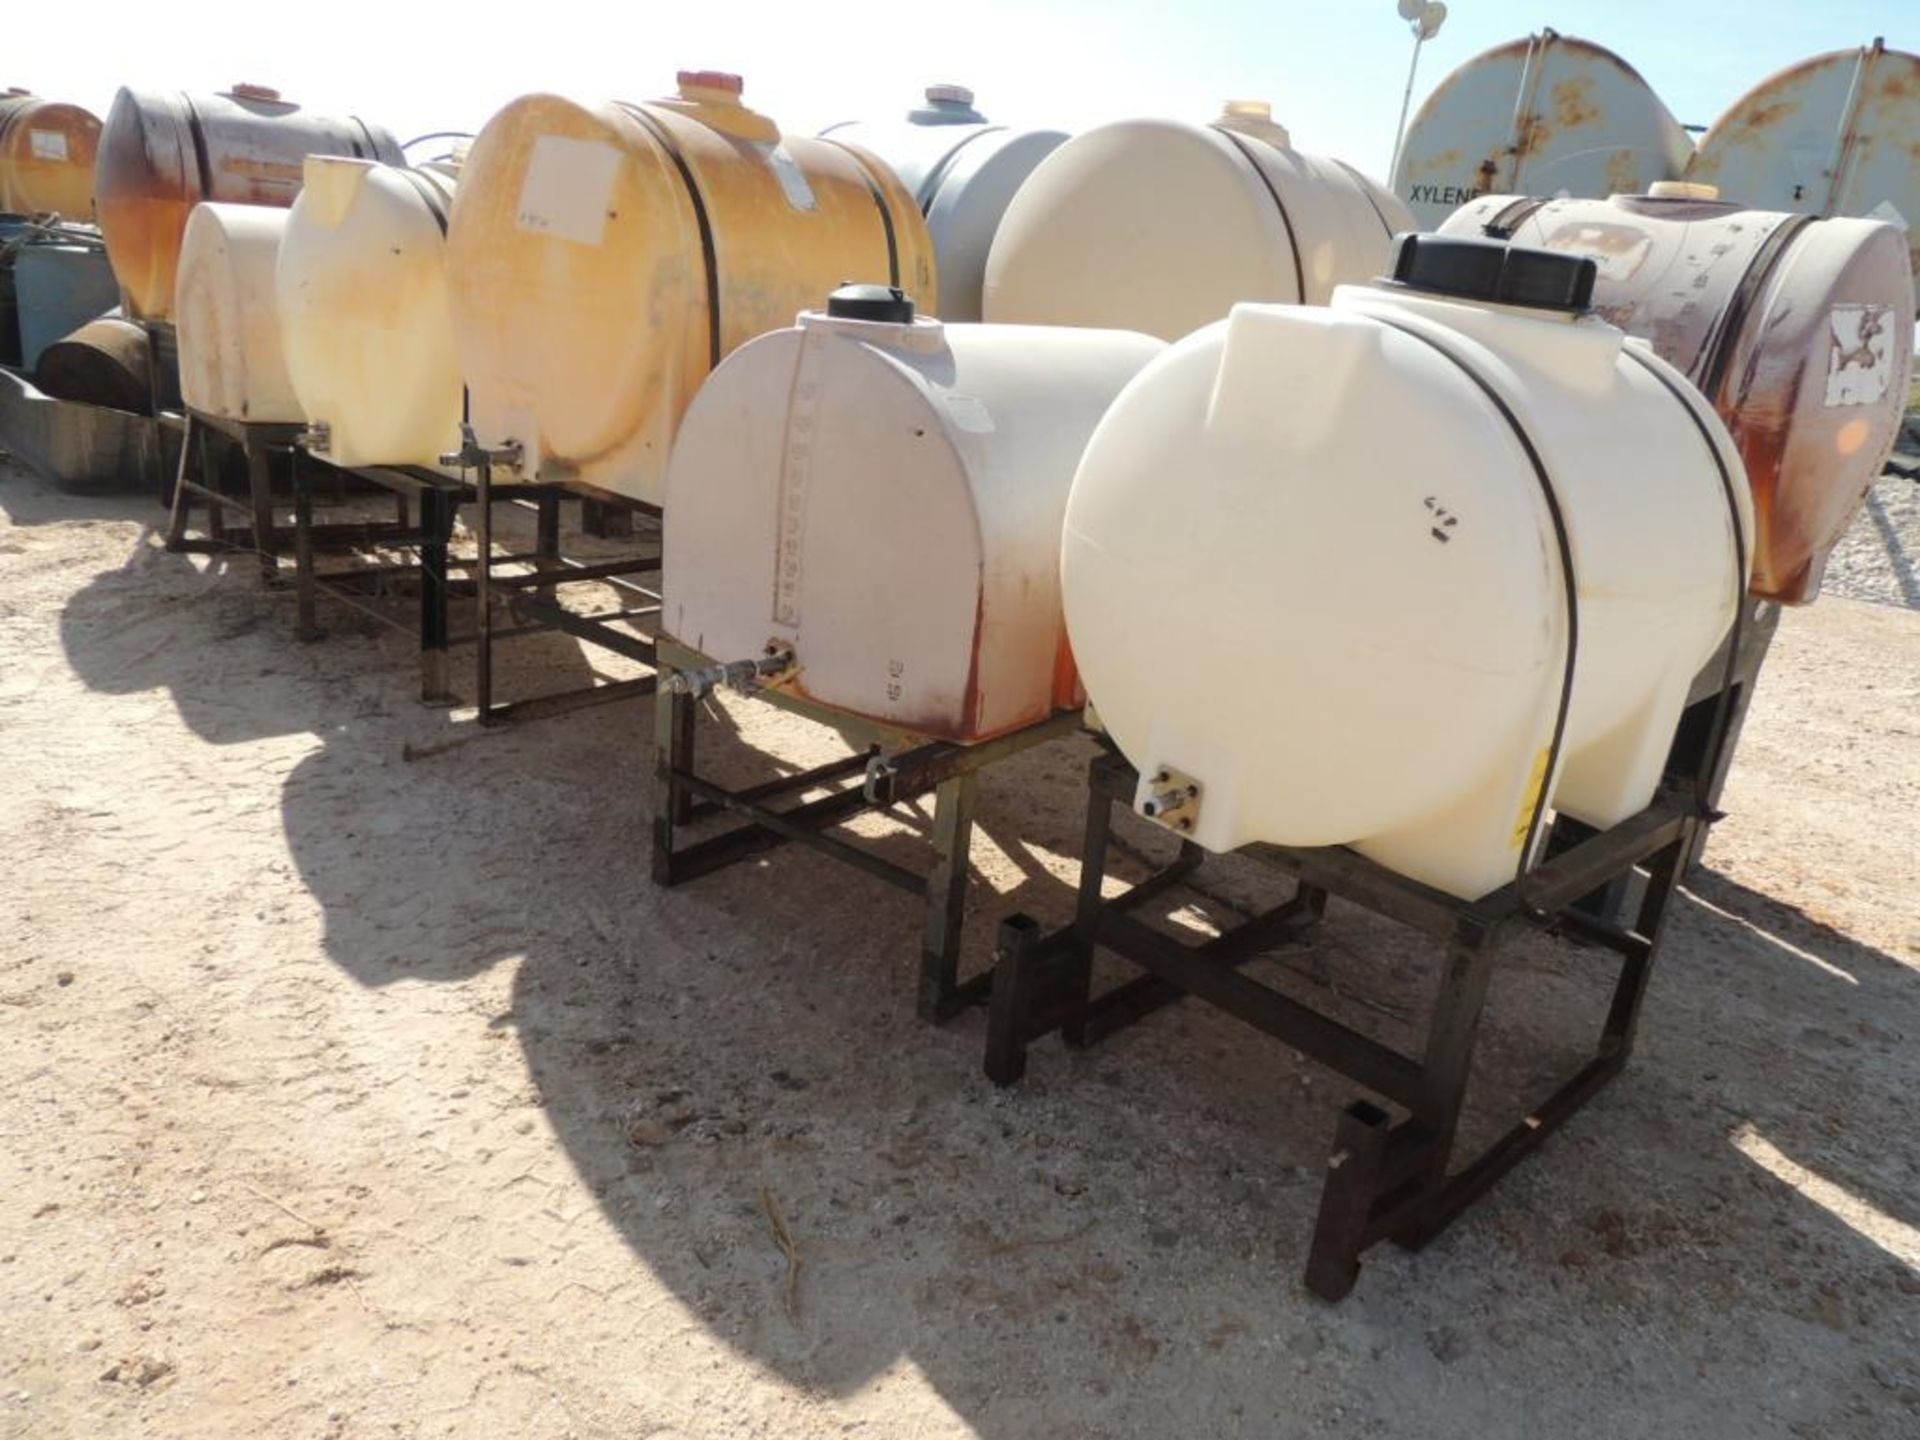 LOT: (10) Poly Tanks - (2) 225 Gallon, (8) 130 Gallon (LOCATED IN HENNESSEY, OK. - IN CHEM YARD)